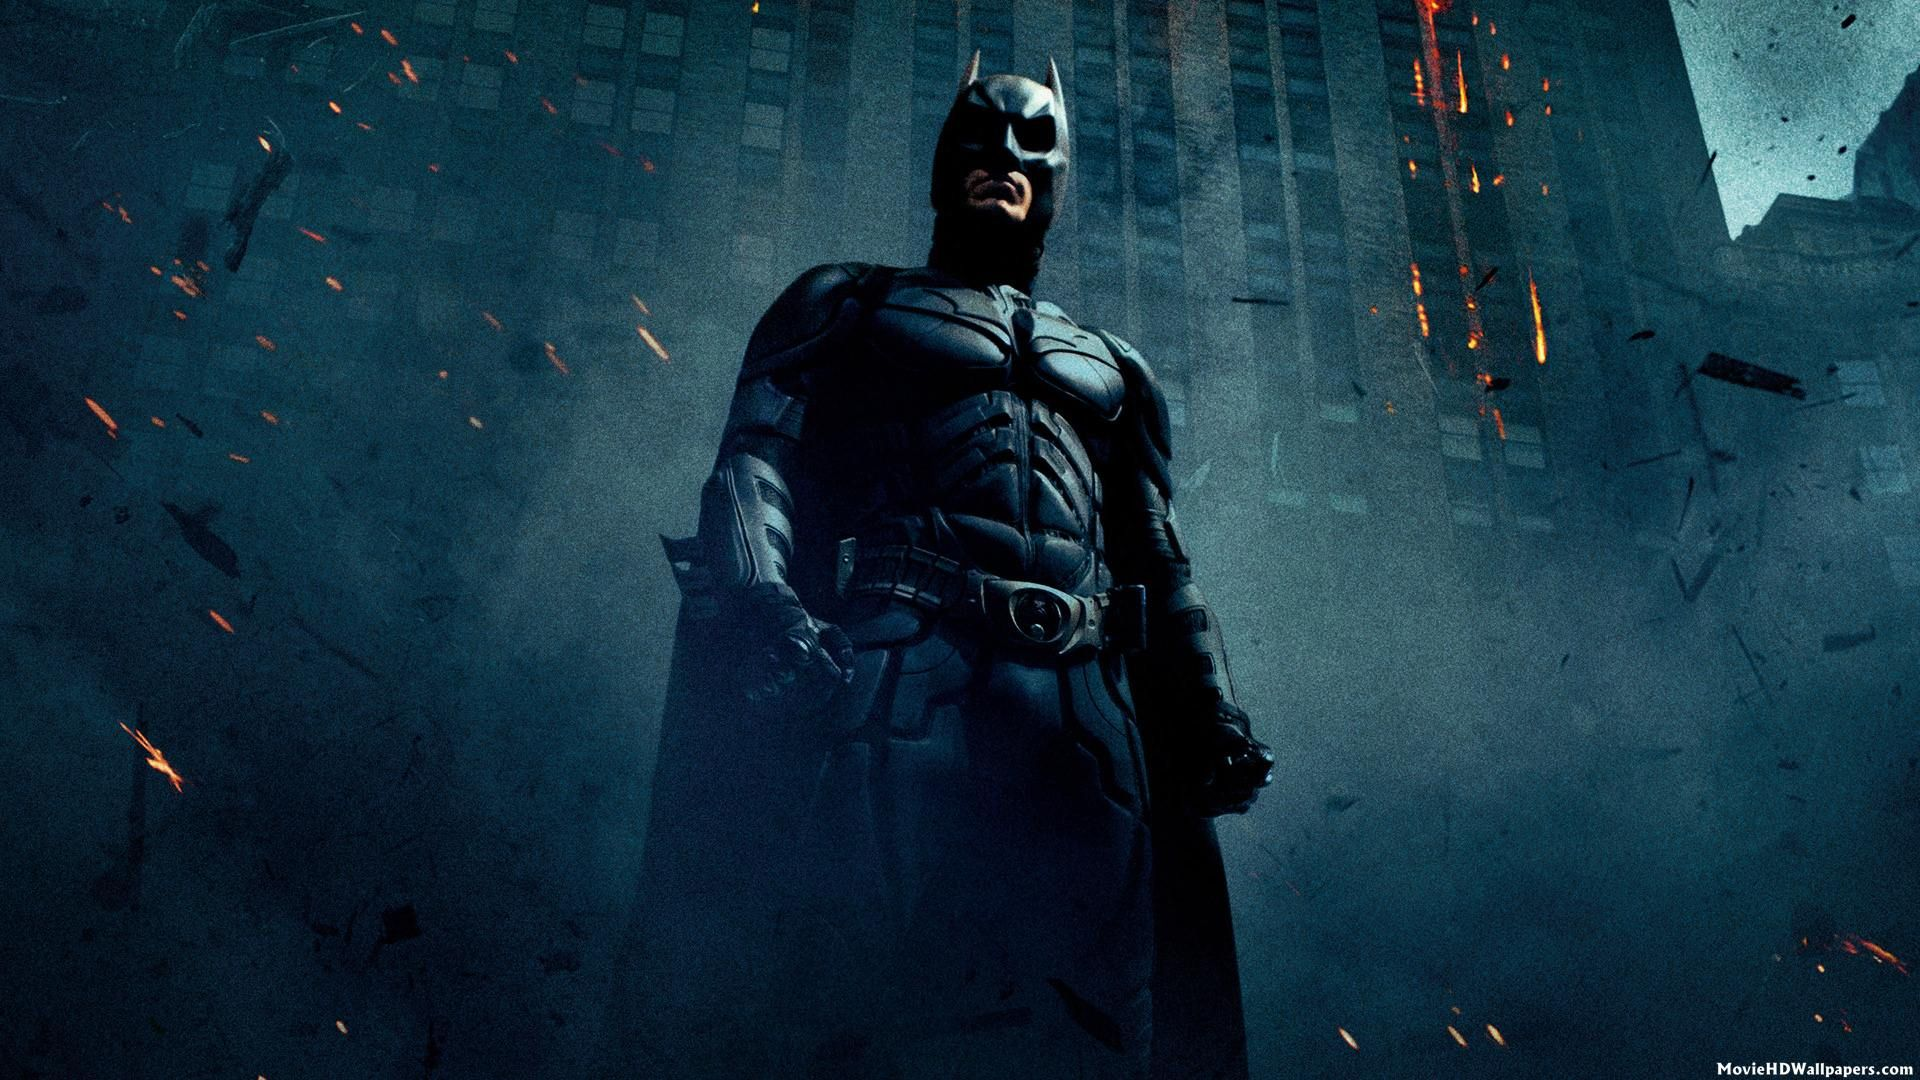 The Dark Knight Rises HD Wallpapers And Desktop Backgrounds 1920x1080 55